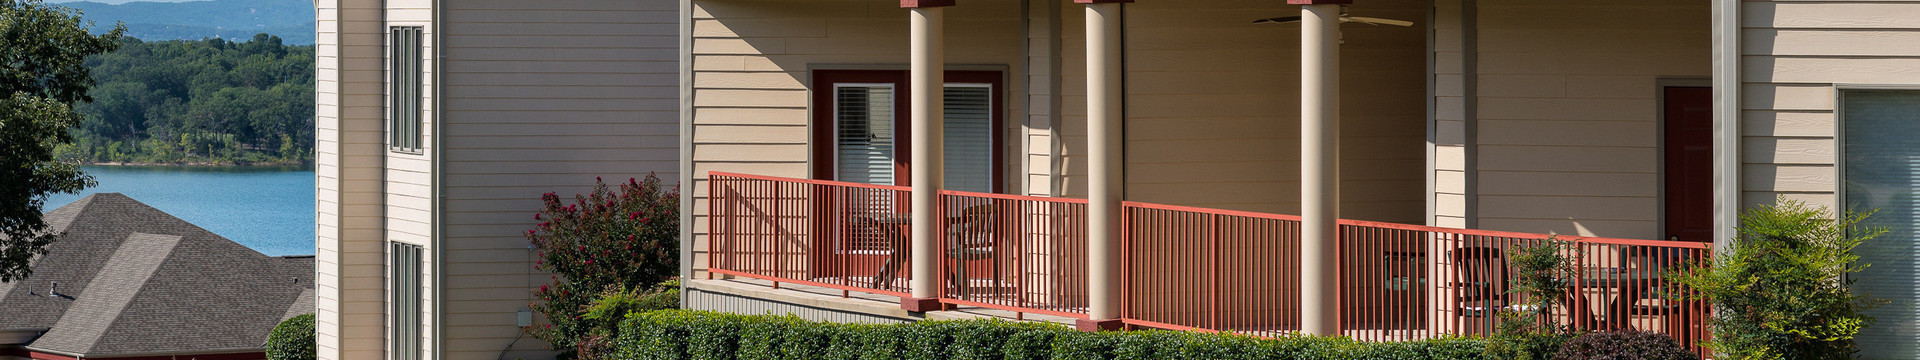 Accommodations for Branson Table Rock Lake resort at Emerald Pointe | Villa Living Area & Balcony